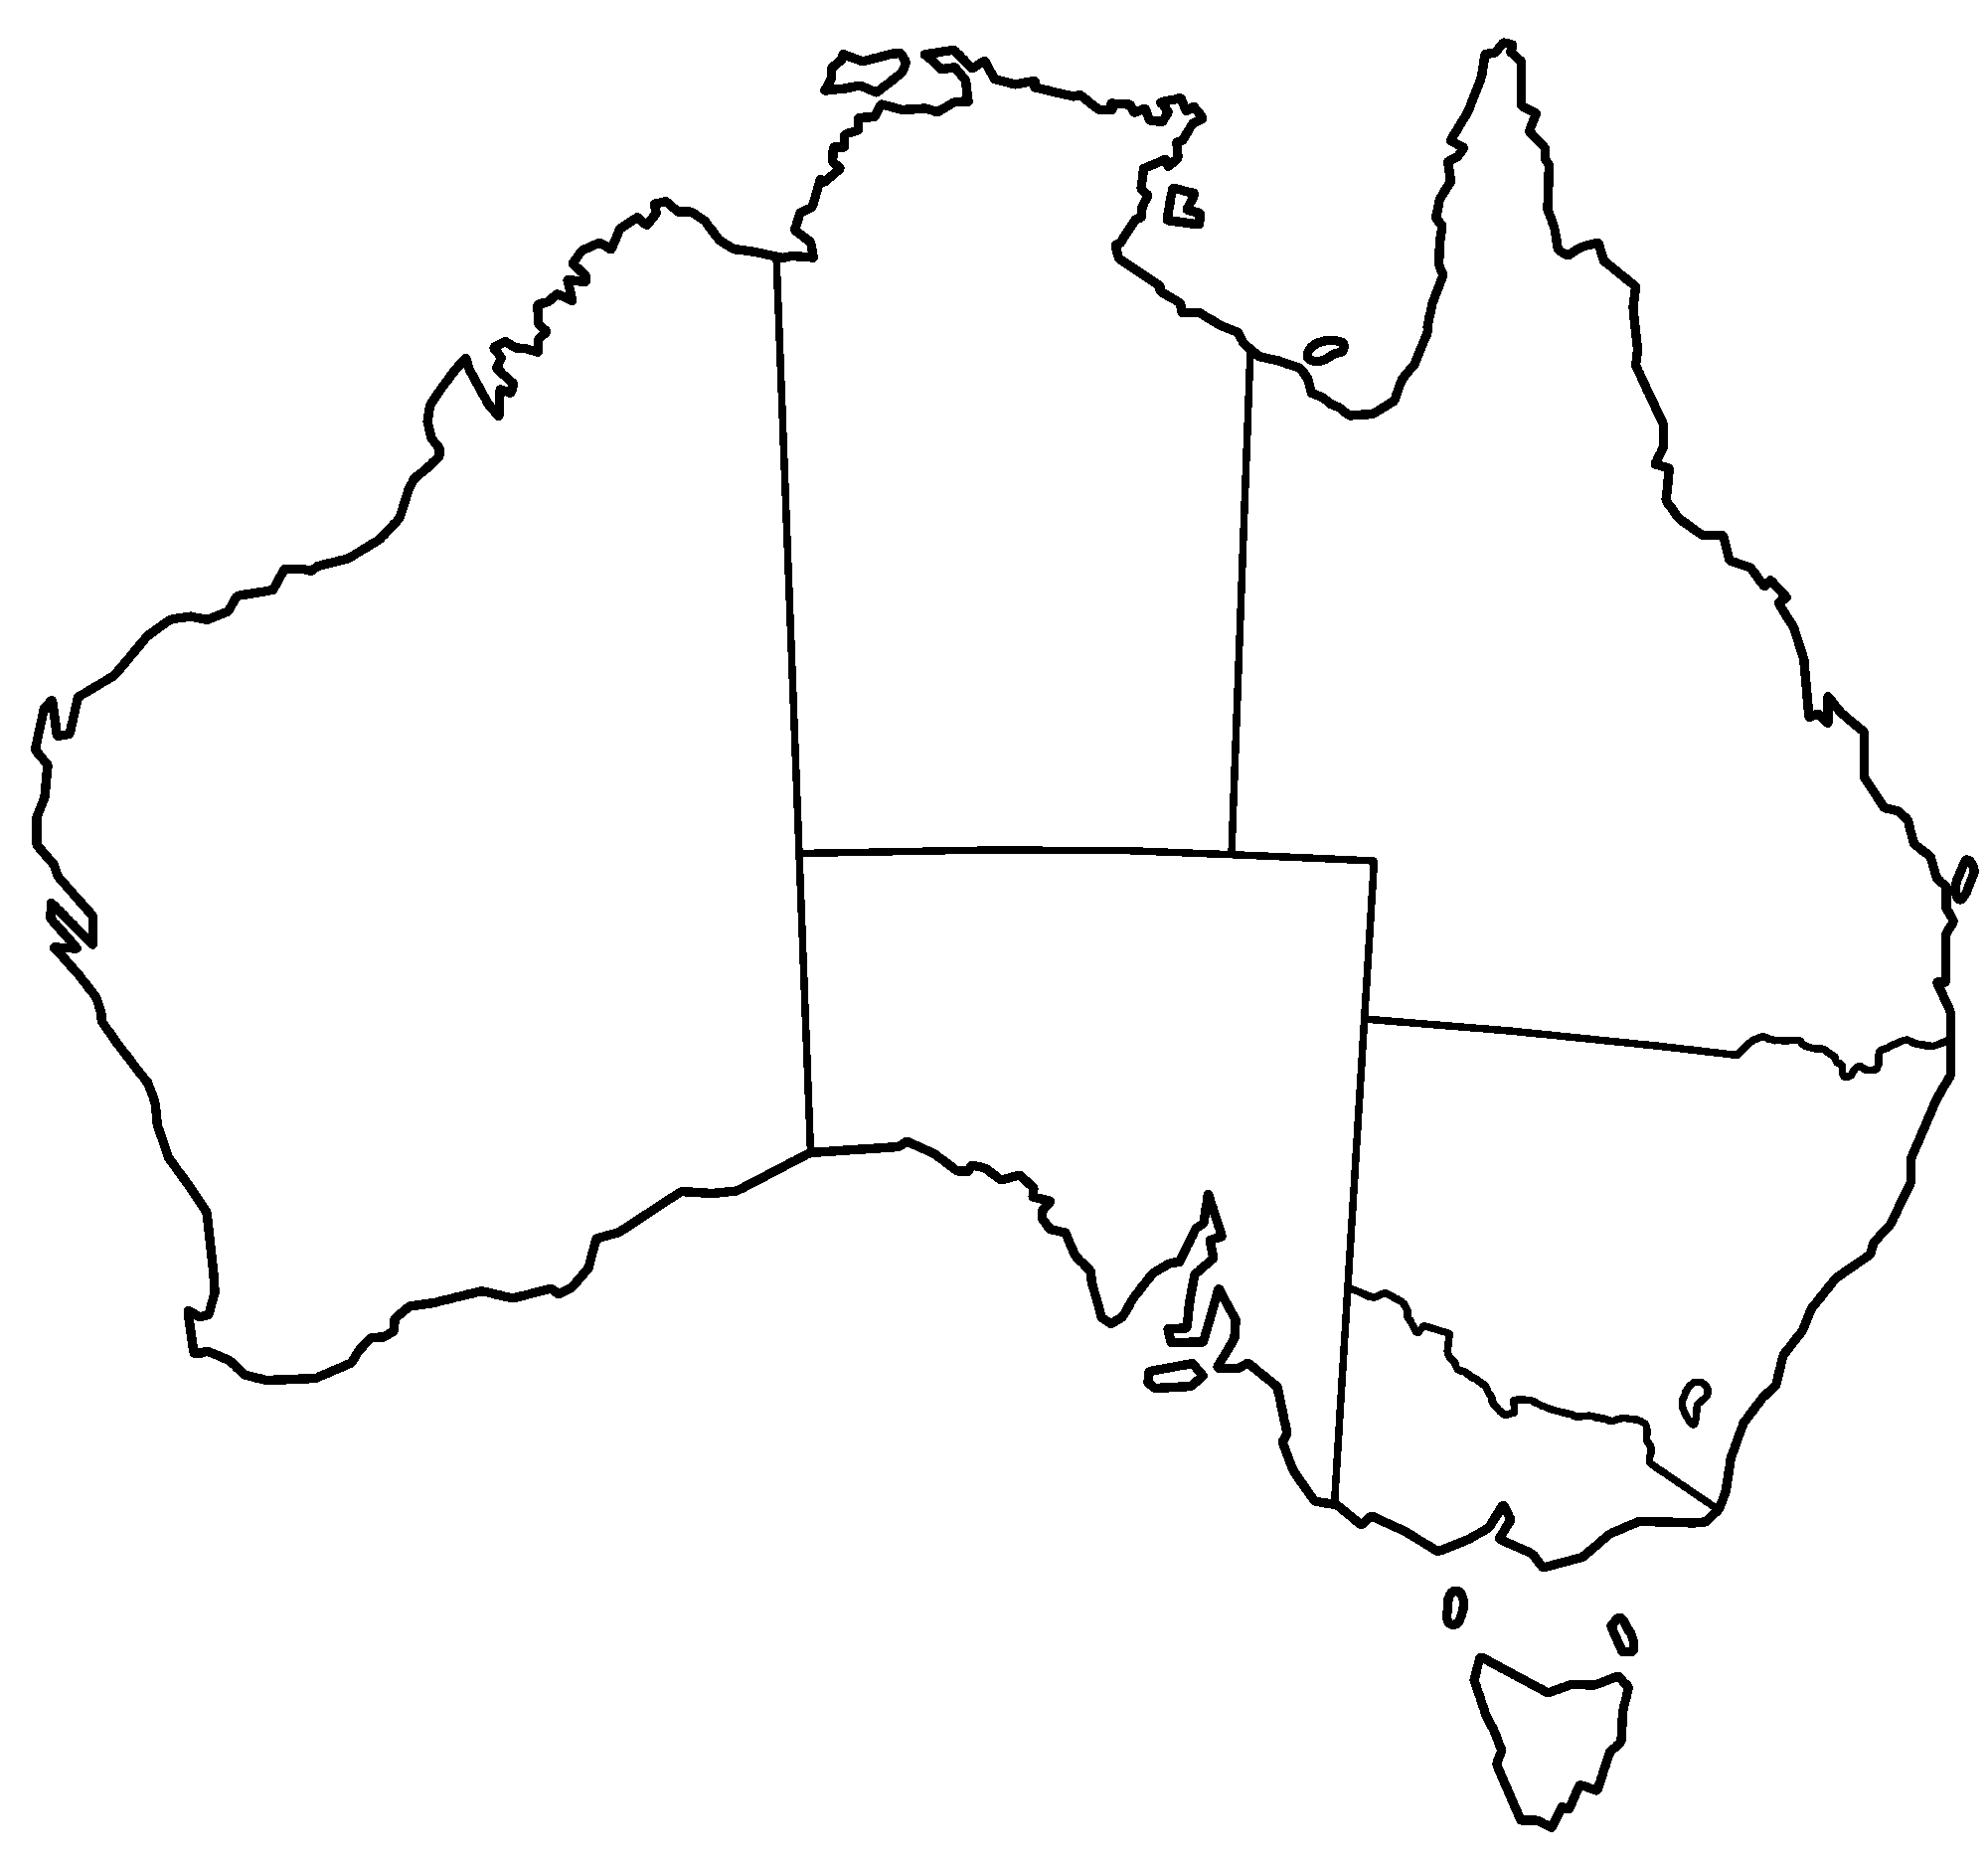 https://i0.wp.com/upload.wikimedia.org/wikipedia/commons/3/3b/Australia_states_blank.png